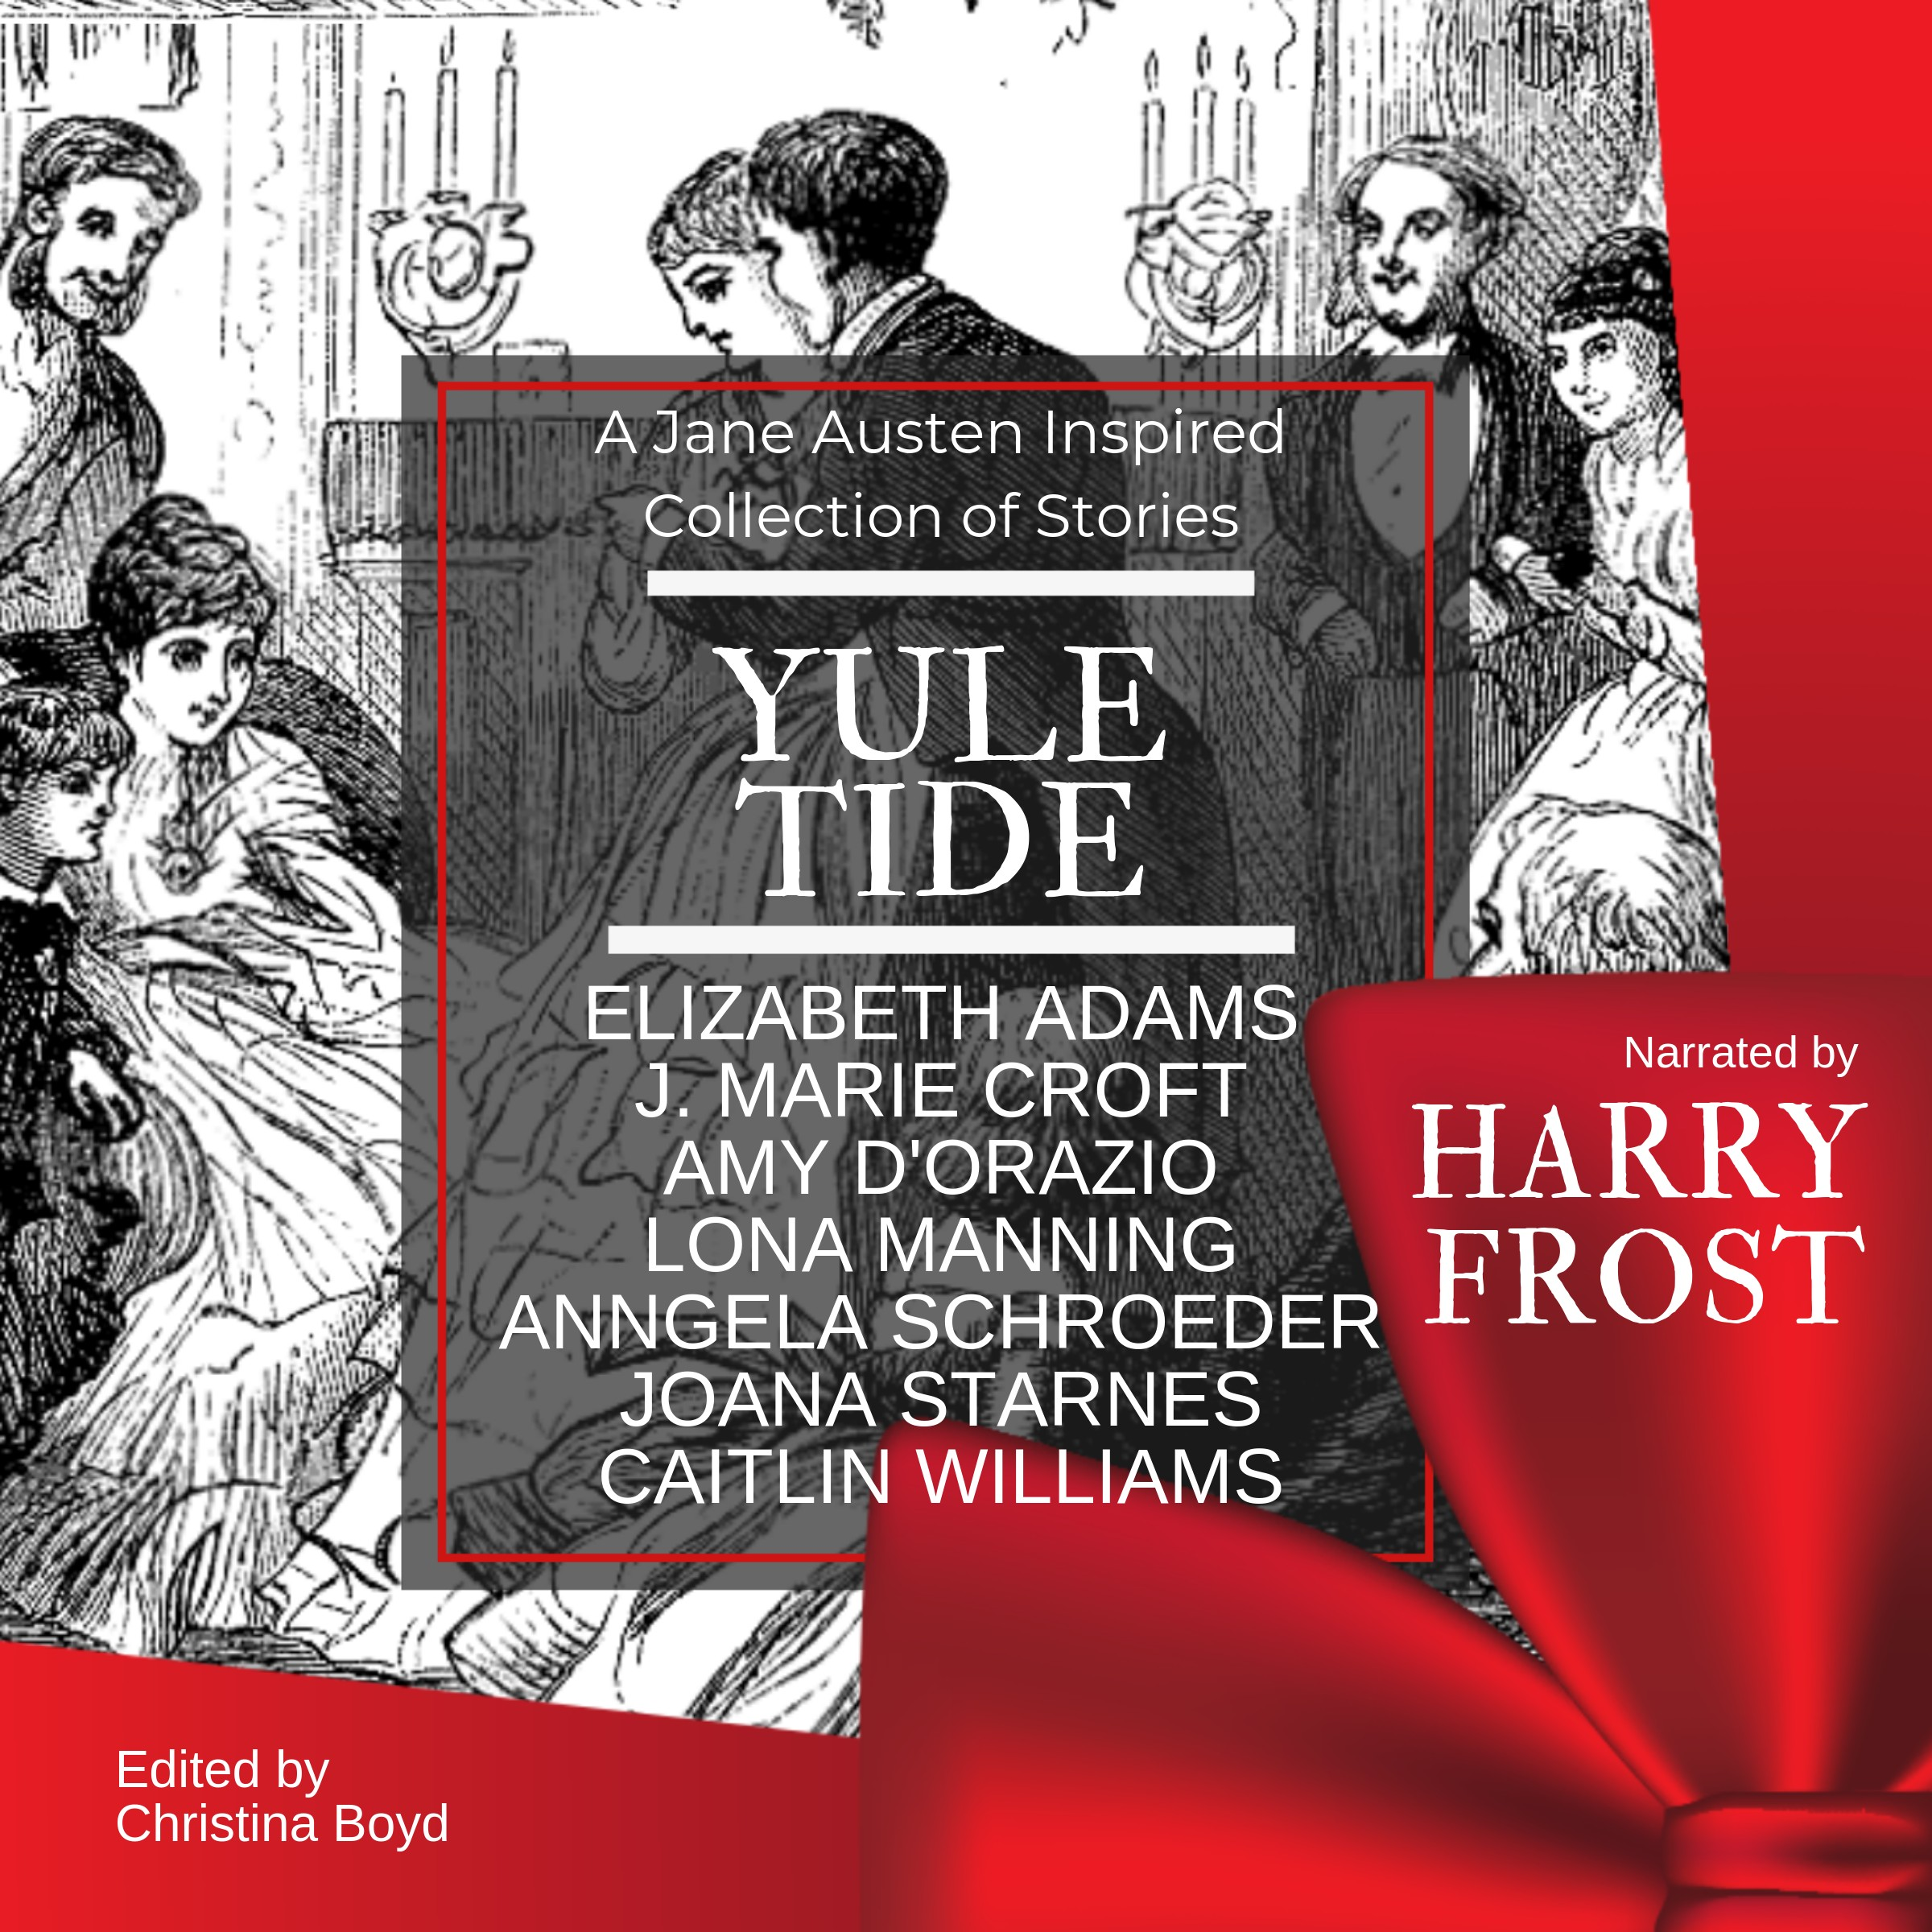 Yule Tide, edited by Christina Boyd, Audiobook (2019)